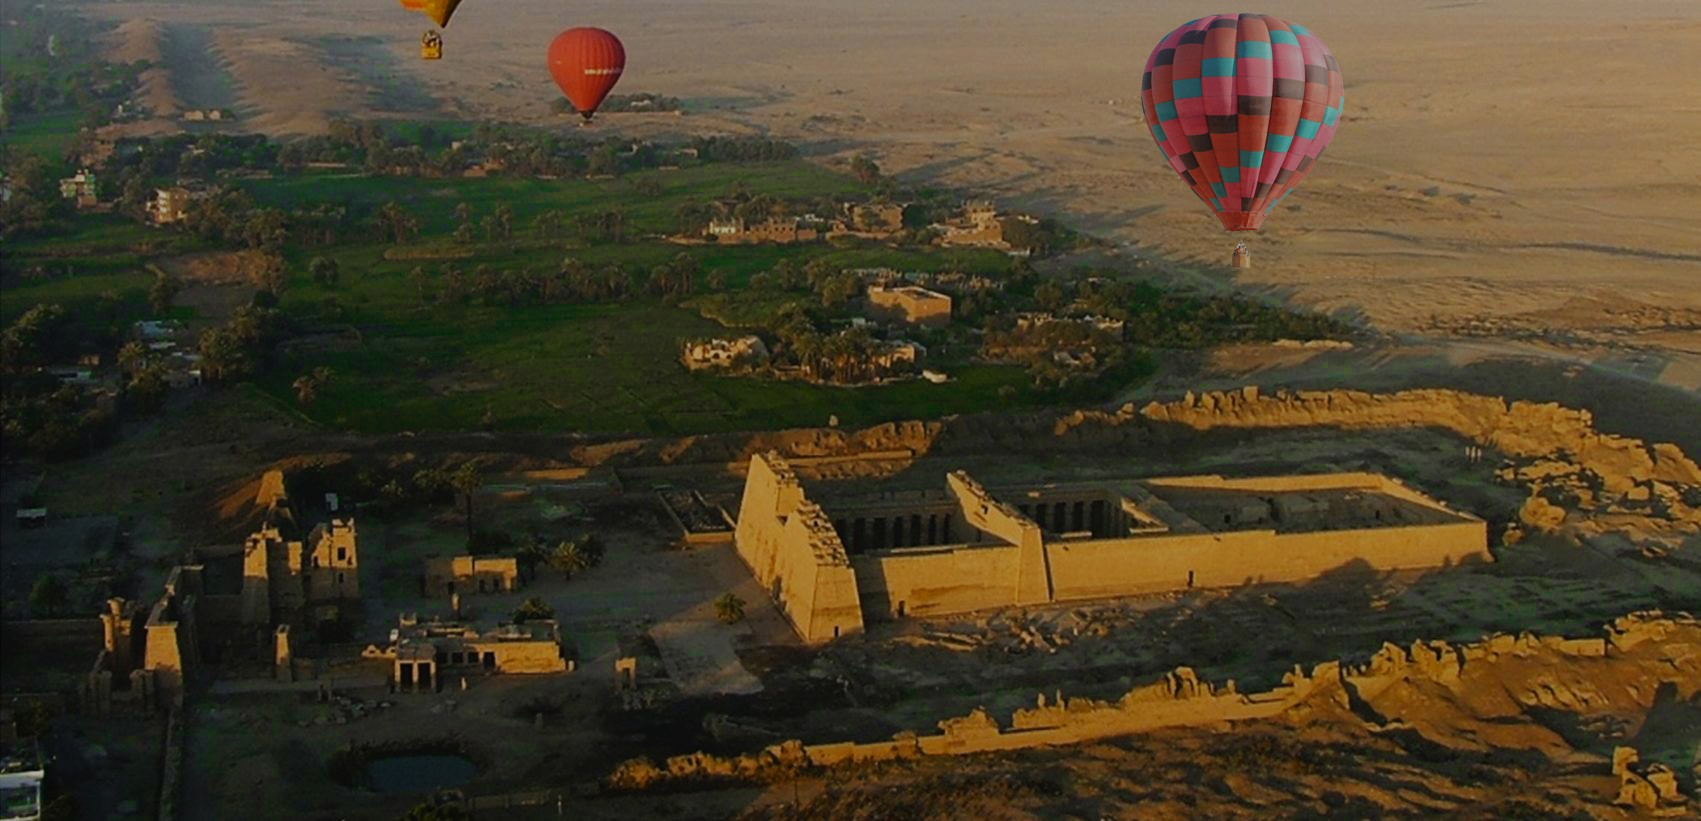 Hot Air Ballooning Ride In Luxor